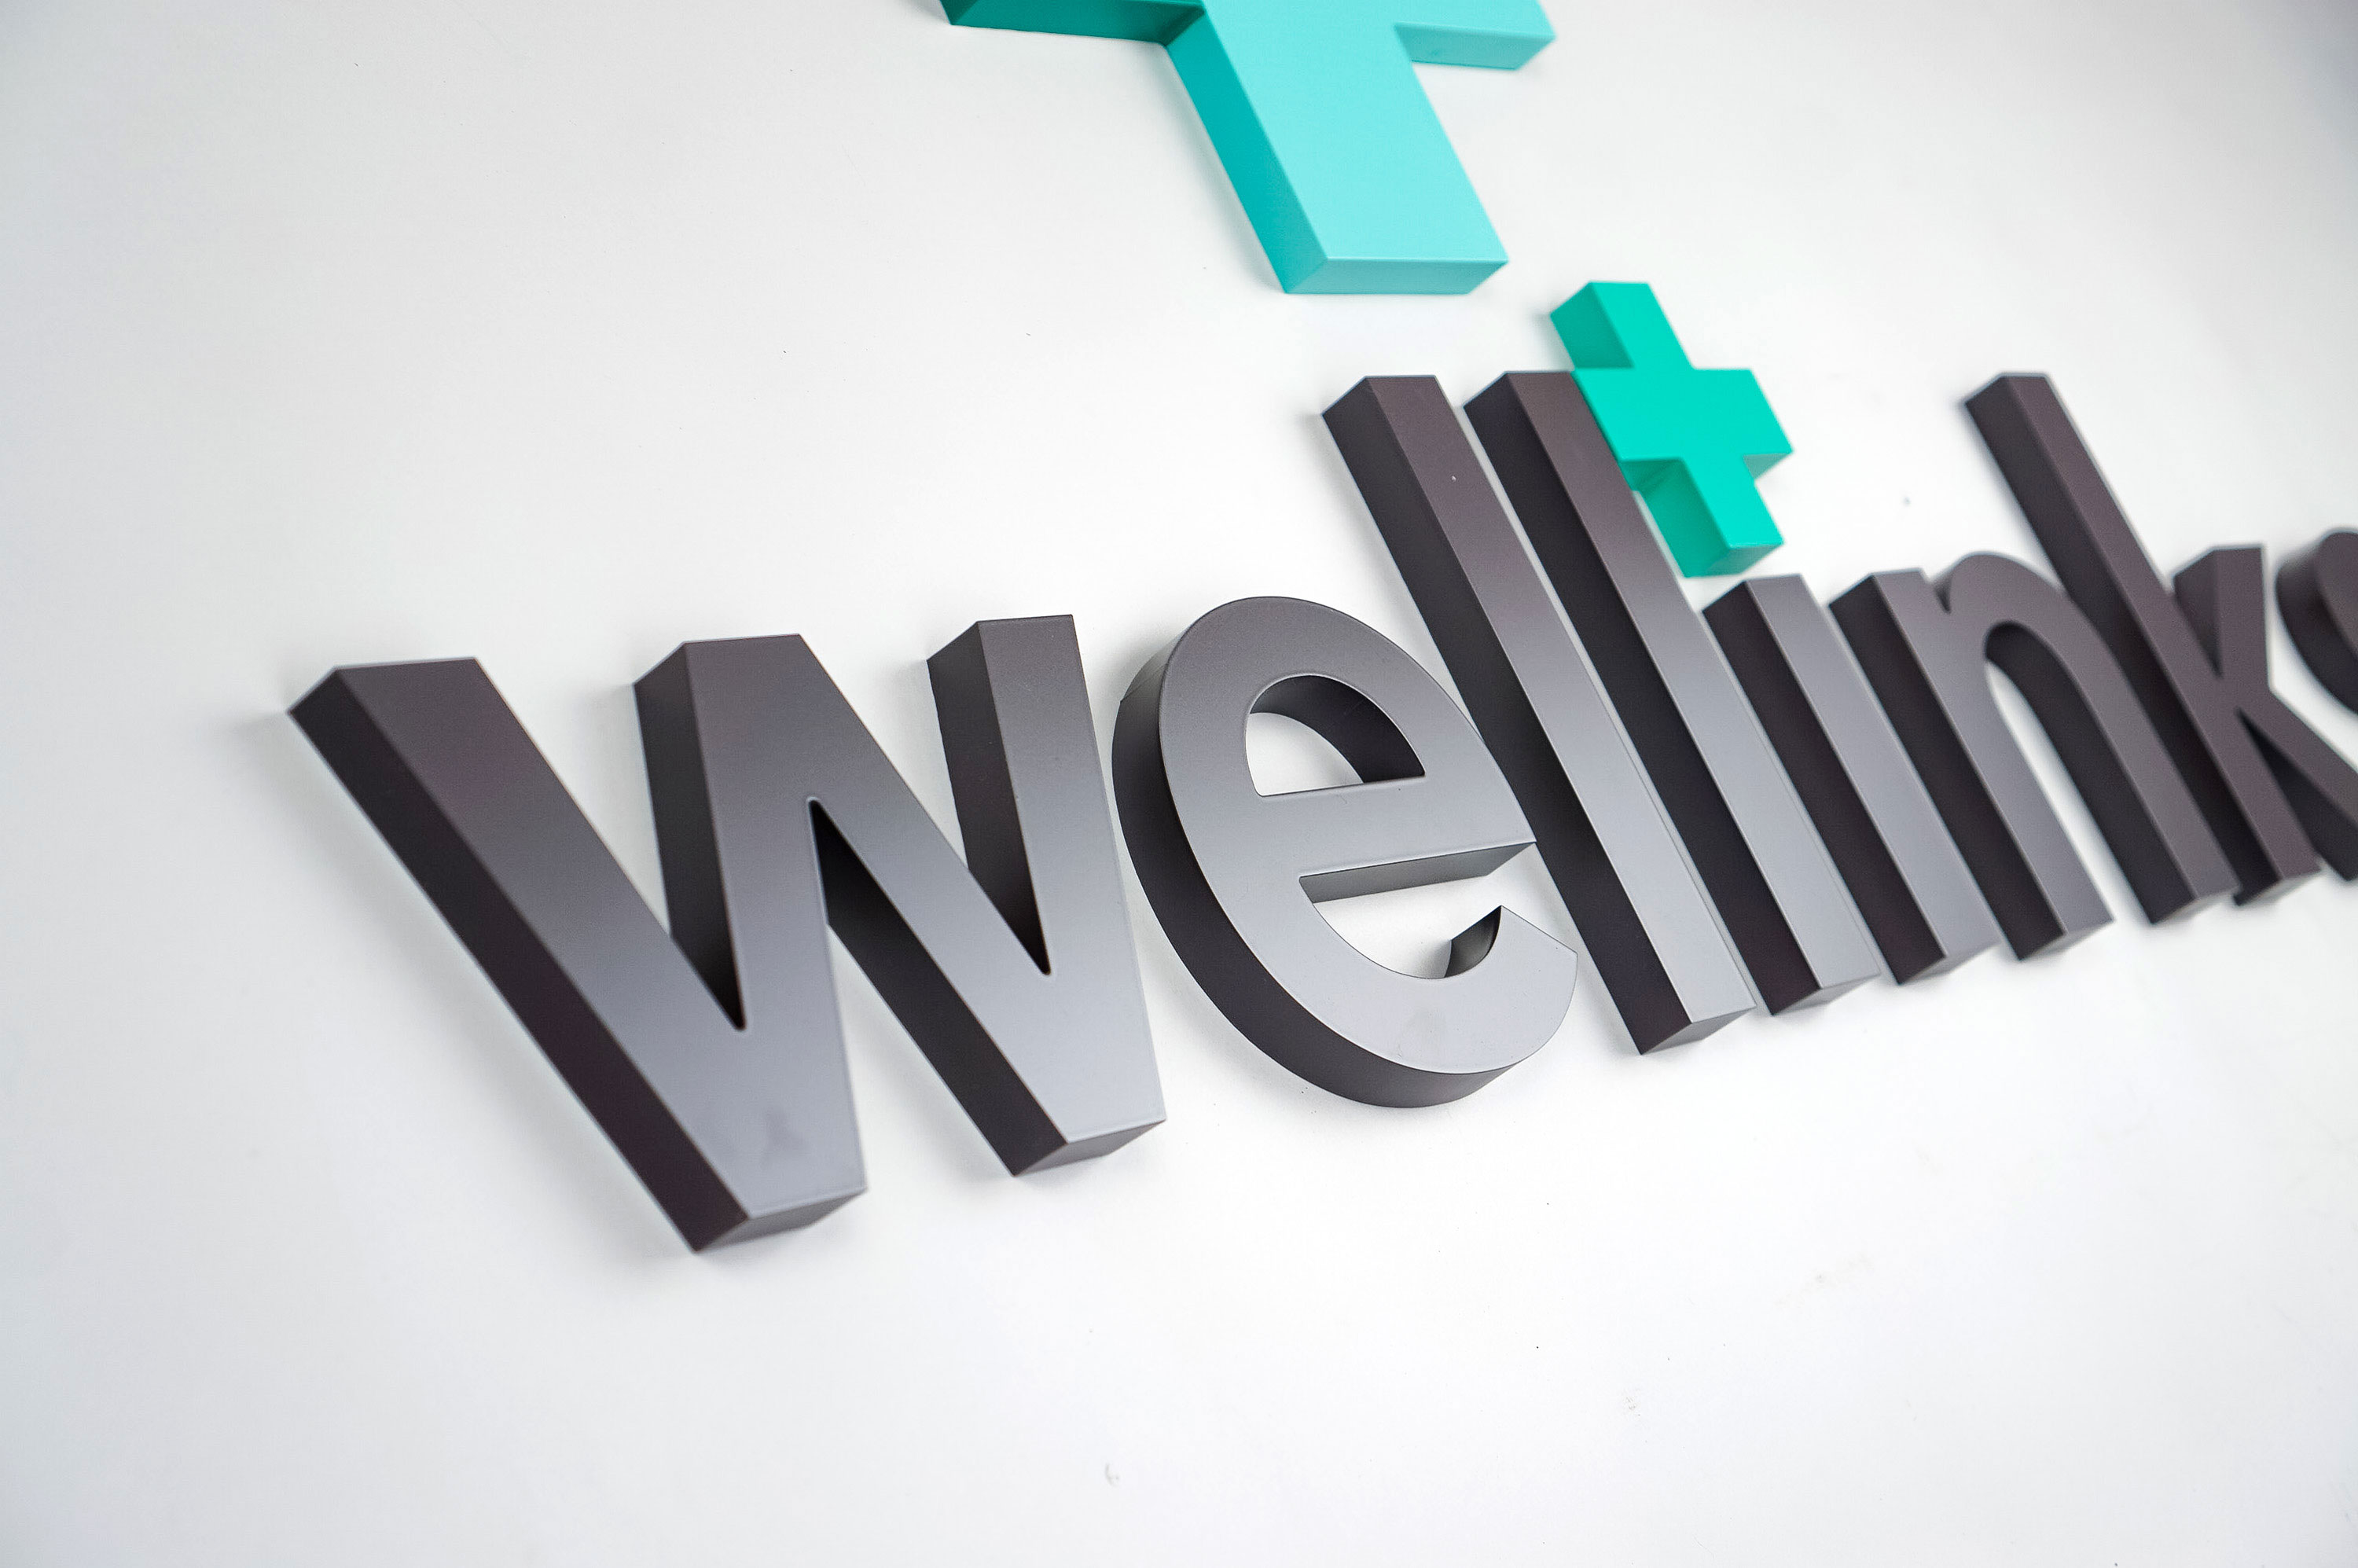 Green and grey lobby/reception logo sign for Wellinks, a wearable health technology company based in New Haven, Connecticut.